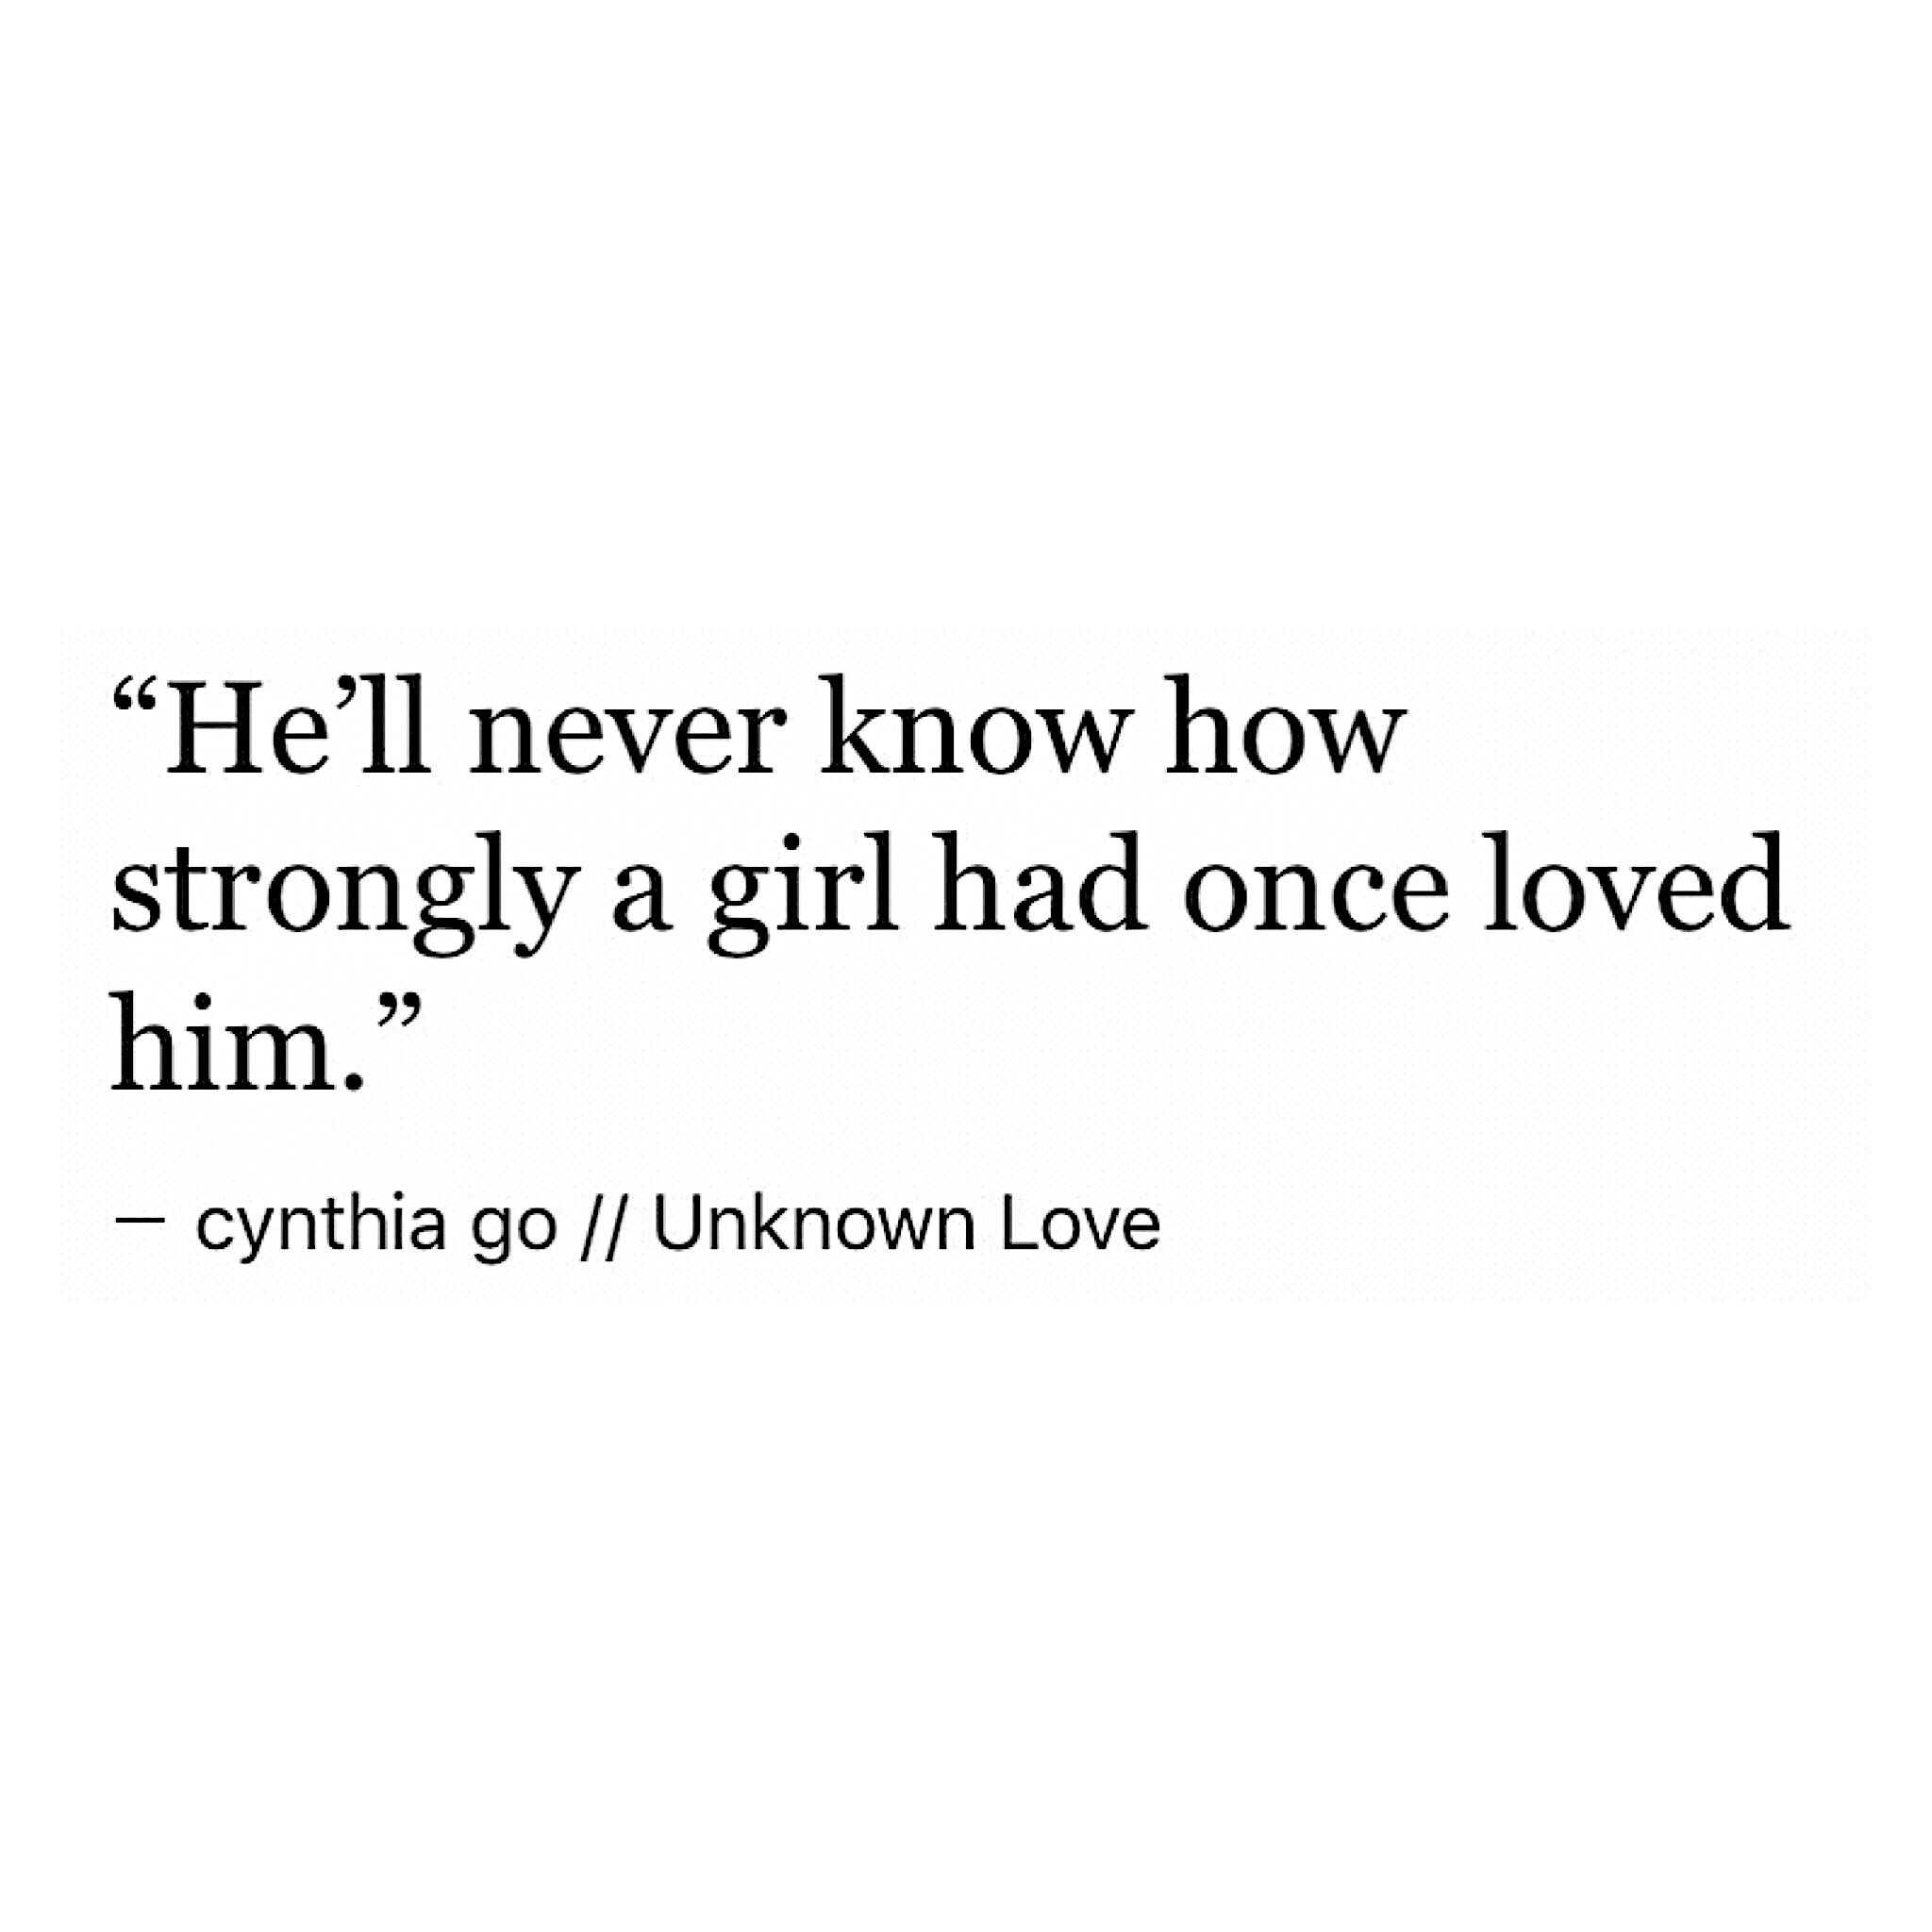 Secret Love Quotes For Him Tumblr : quotes for him love quotes tumblr for him love poems for crush tumblr ...